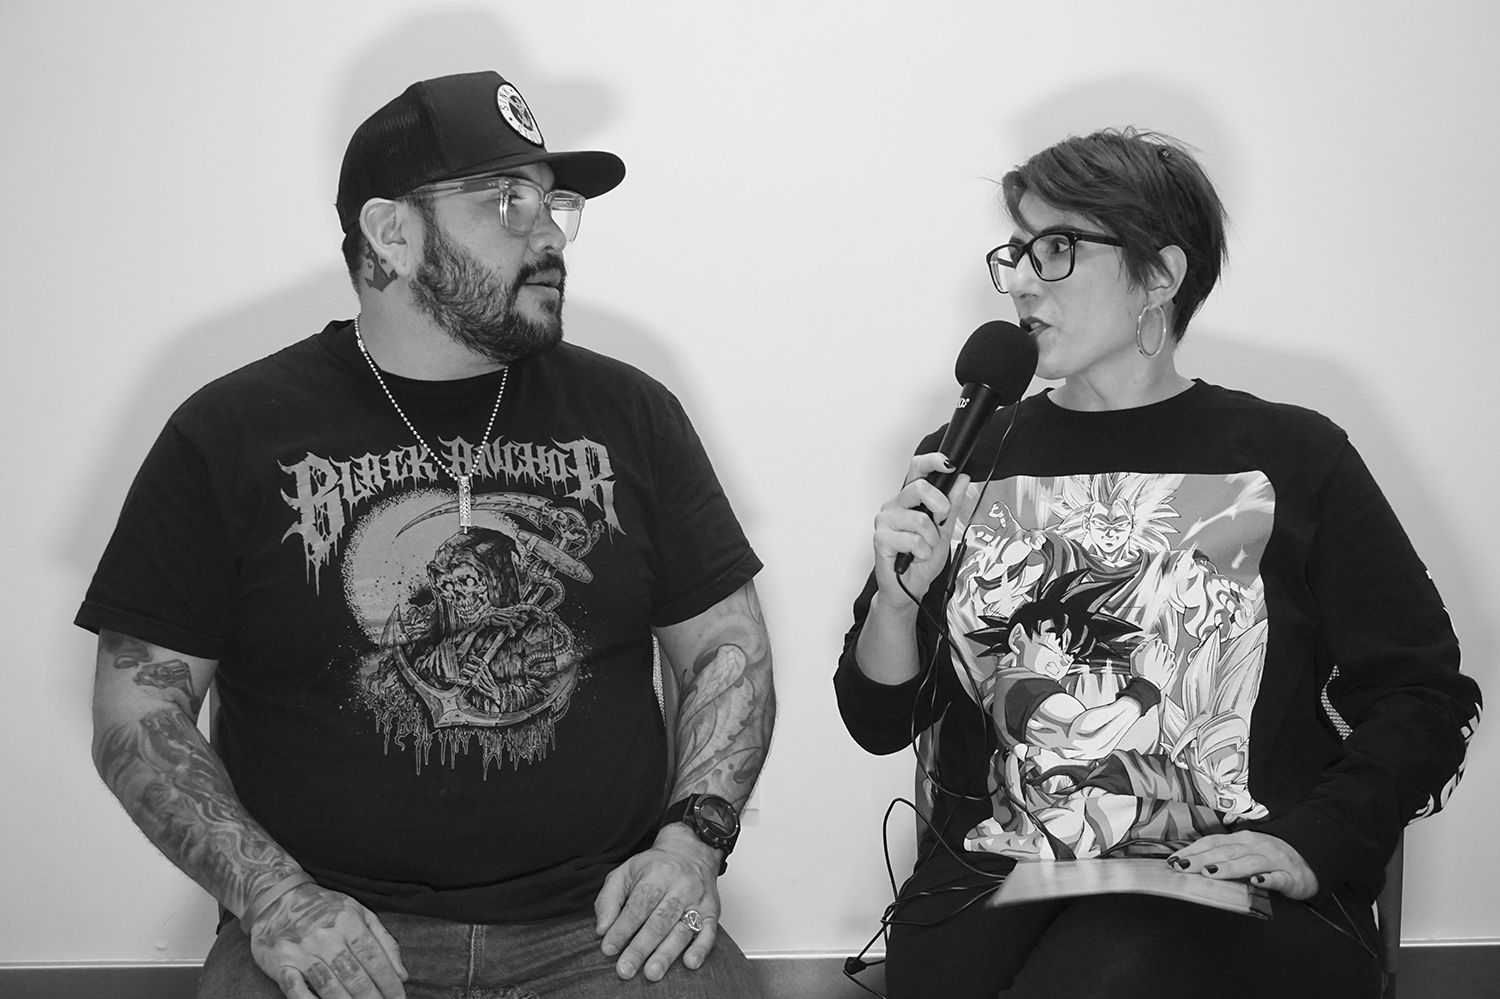 tattoo artist nikko hurtado interviewed by adriana de barros from scene360